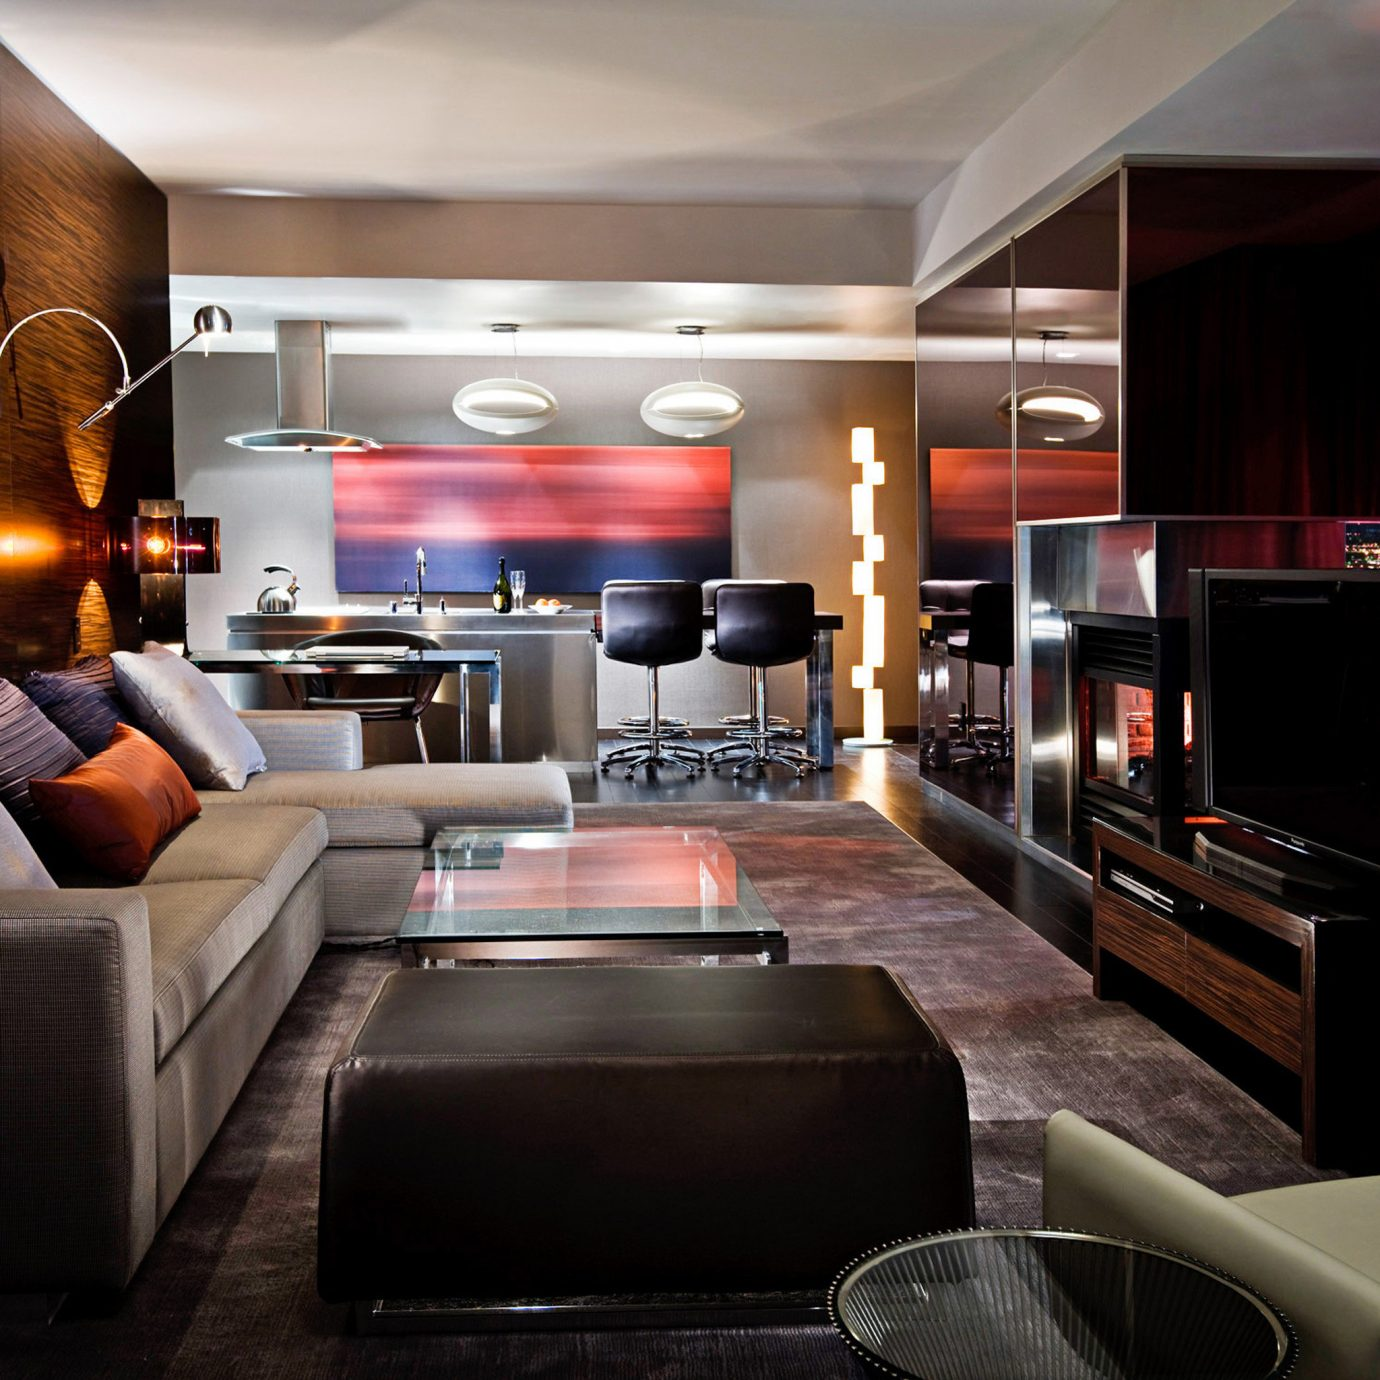 Budget City Entertainment Party Scenic views sofa recreation room Lobby living room home Bar Suite Modern